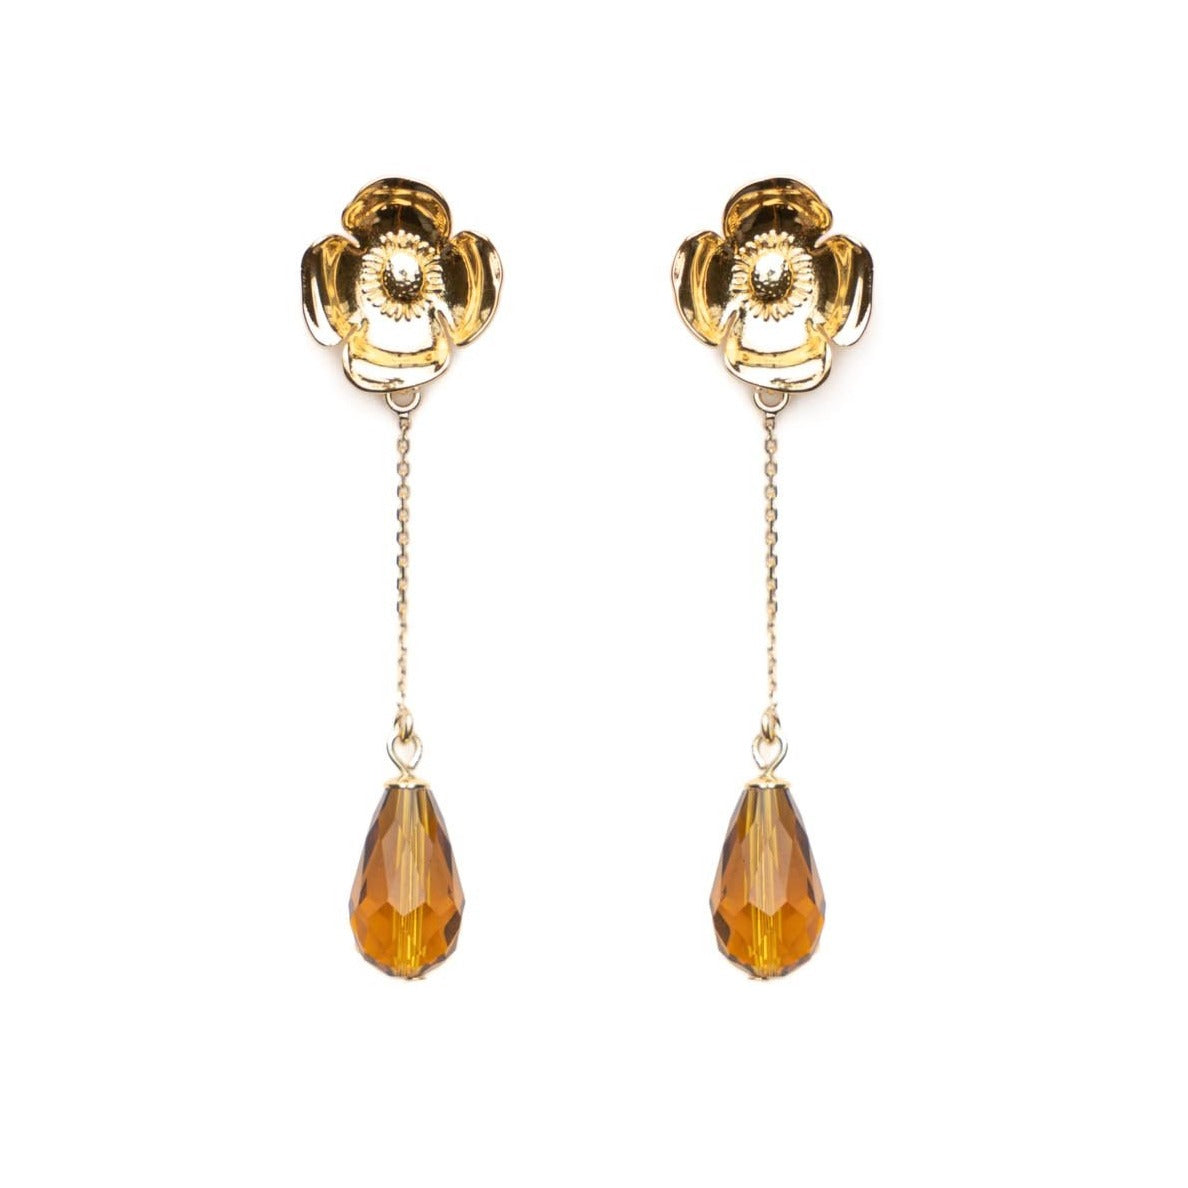 Selma long cognac earrings